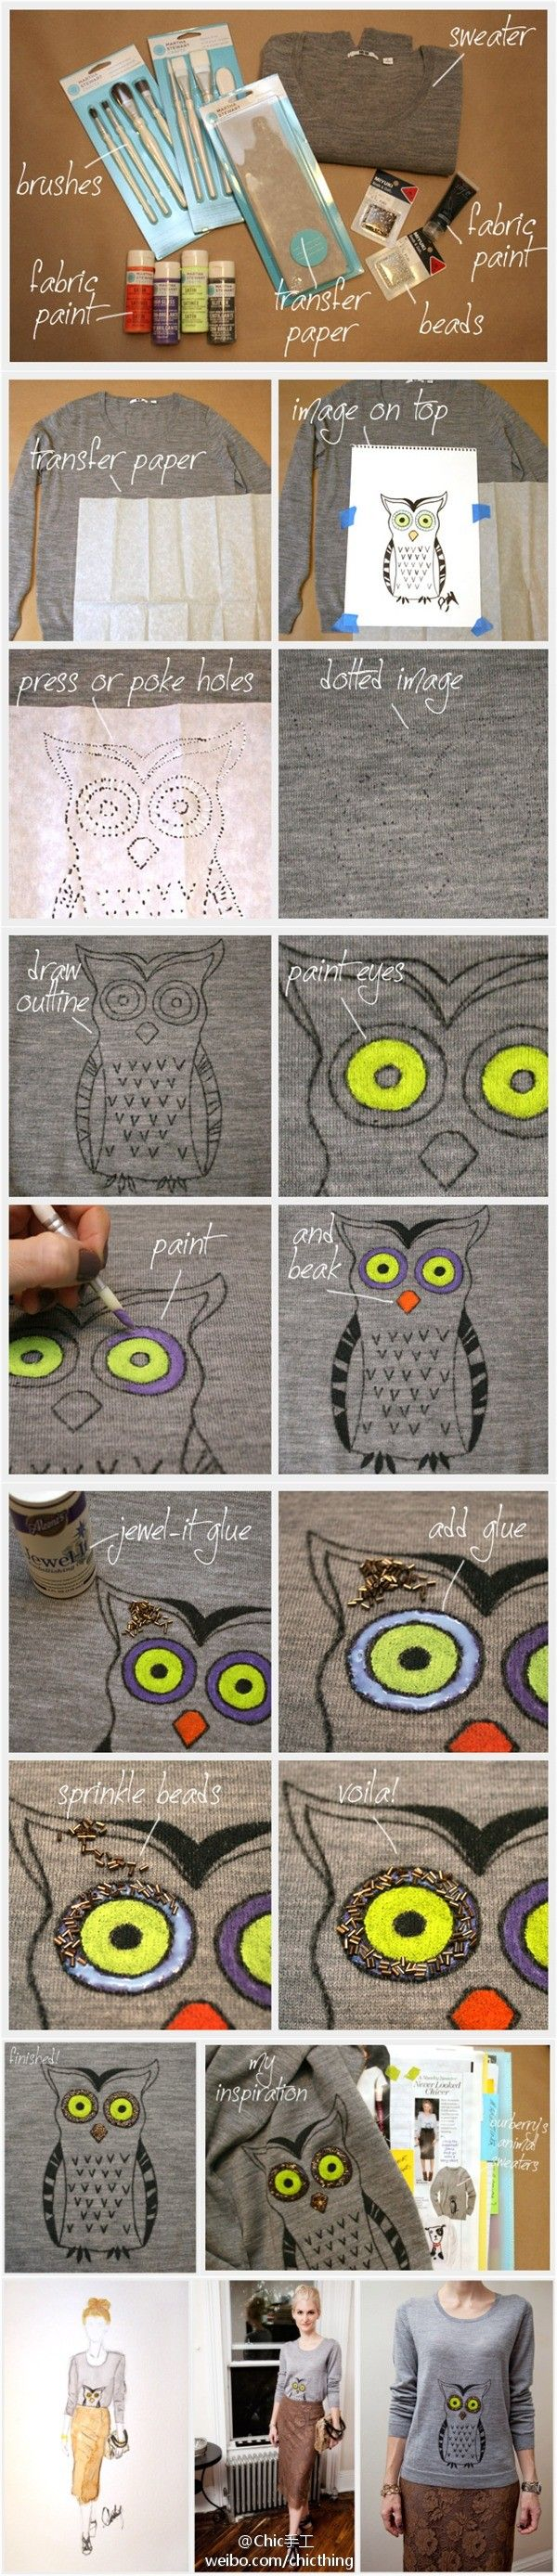 Cool T-shirt Crafts for Kids and Teens, tshirt,handmade,craft,diy,upcycle,recycle crafts for kids, diy, owl, t shirt painting